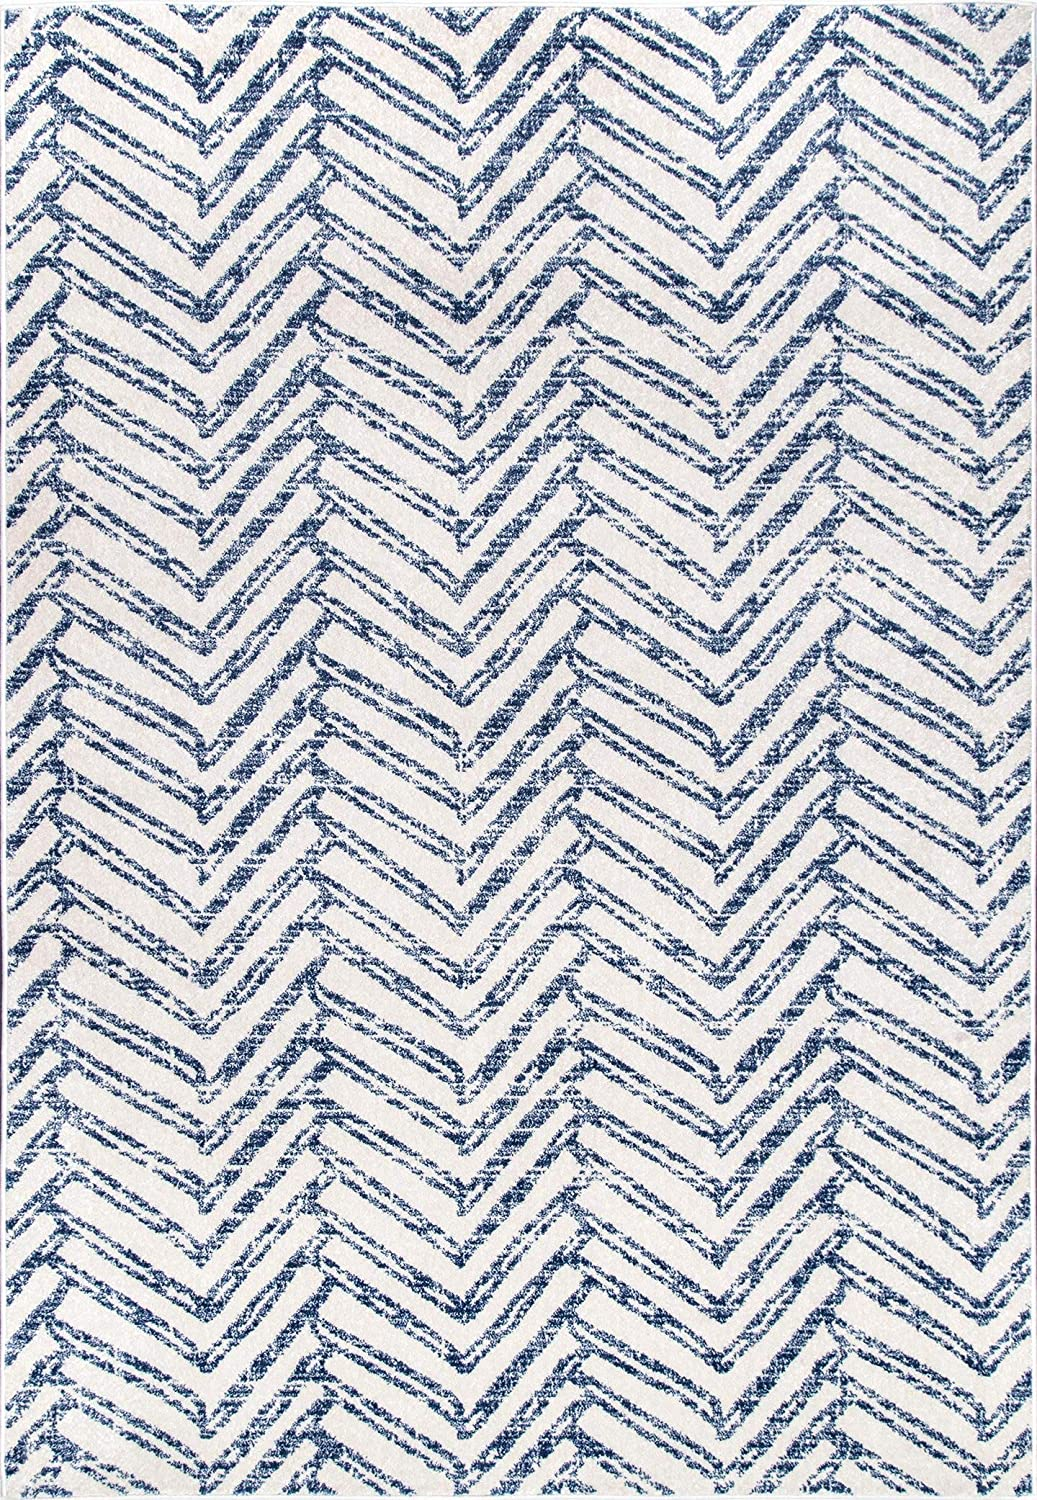 Geometric Area Rug,  Blue